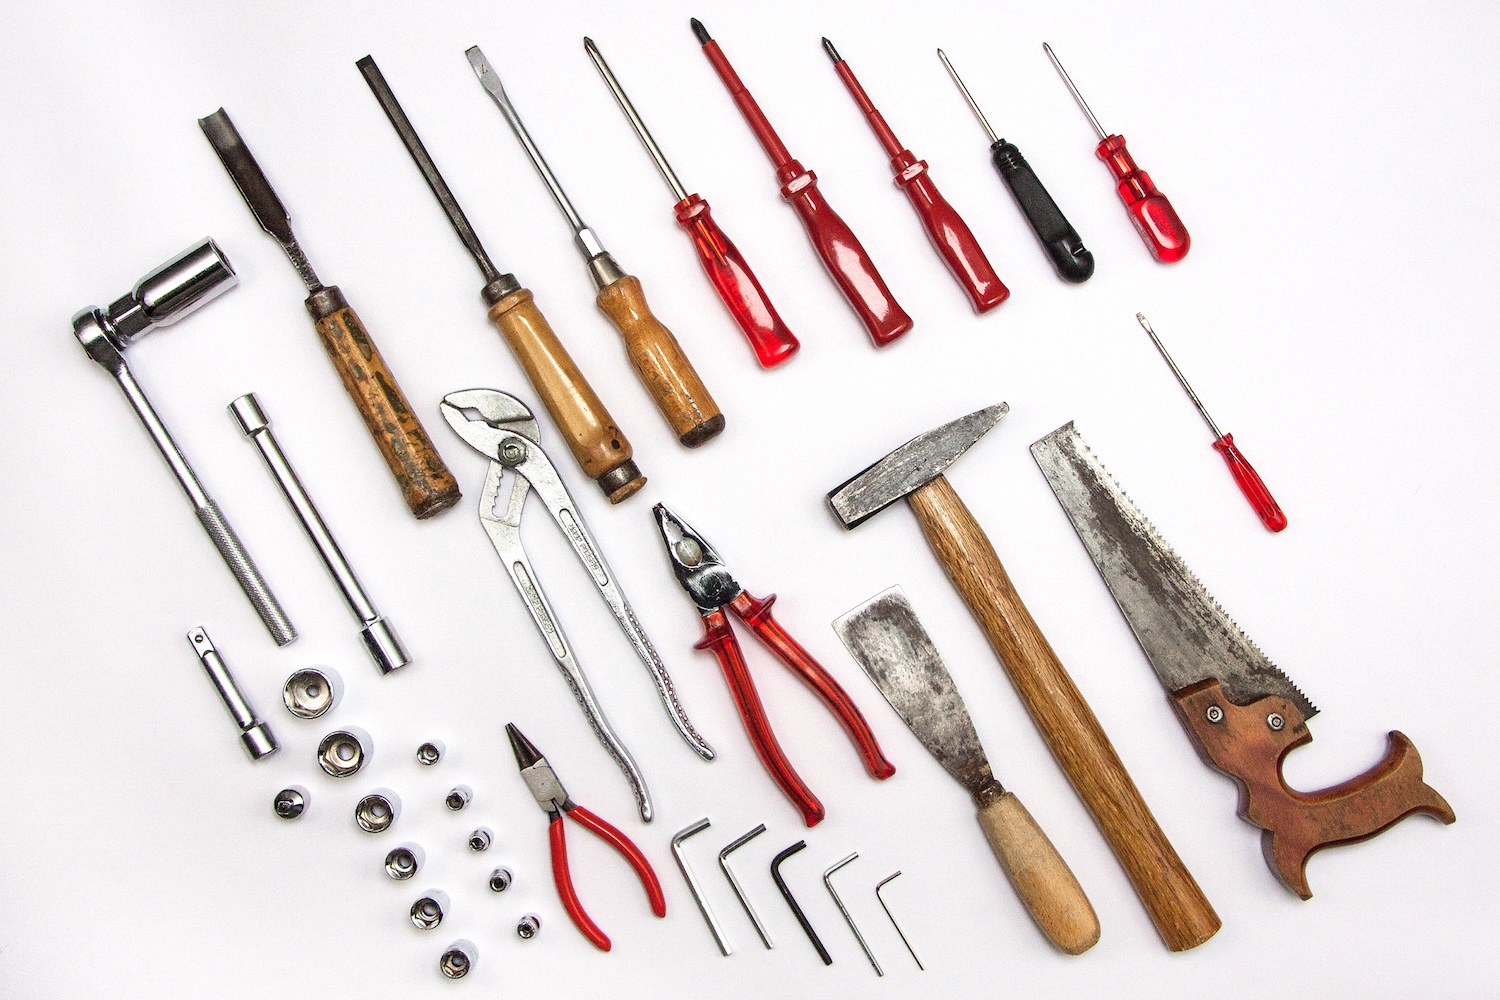 Getting your fix online: the websites that make repairing easier